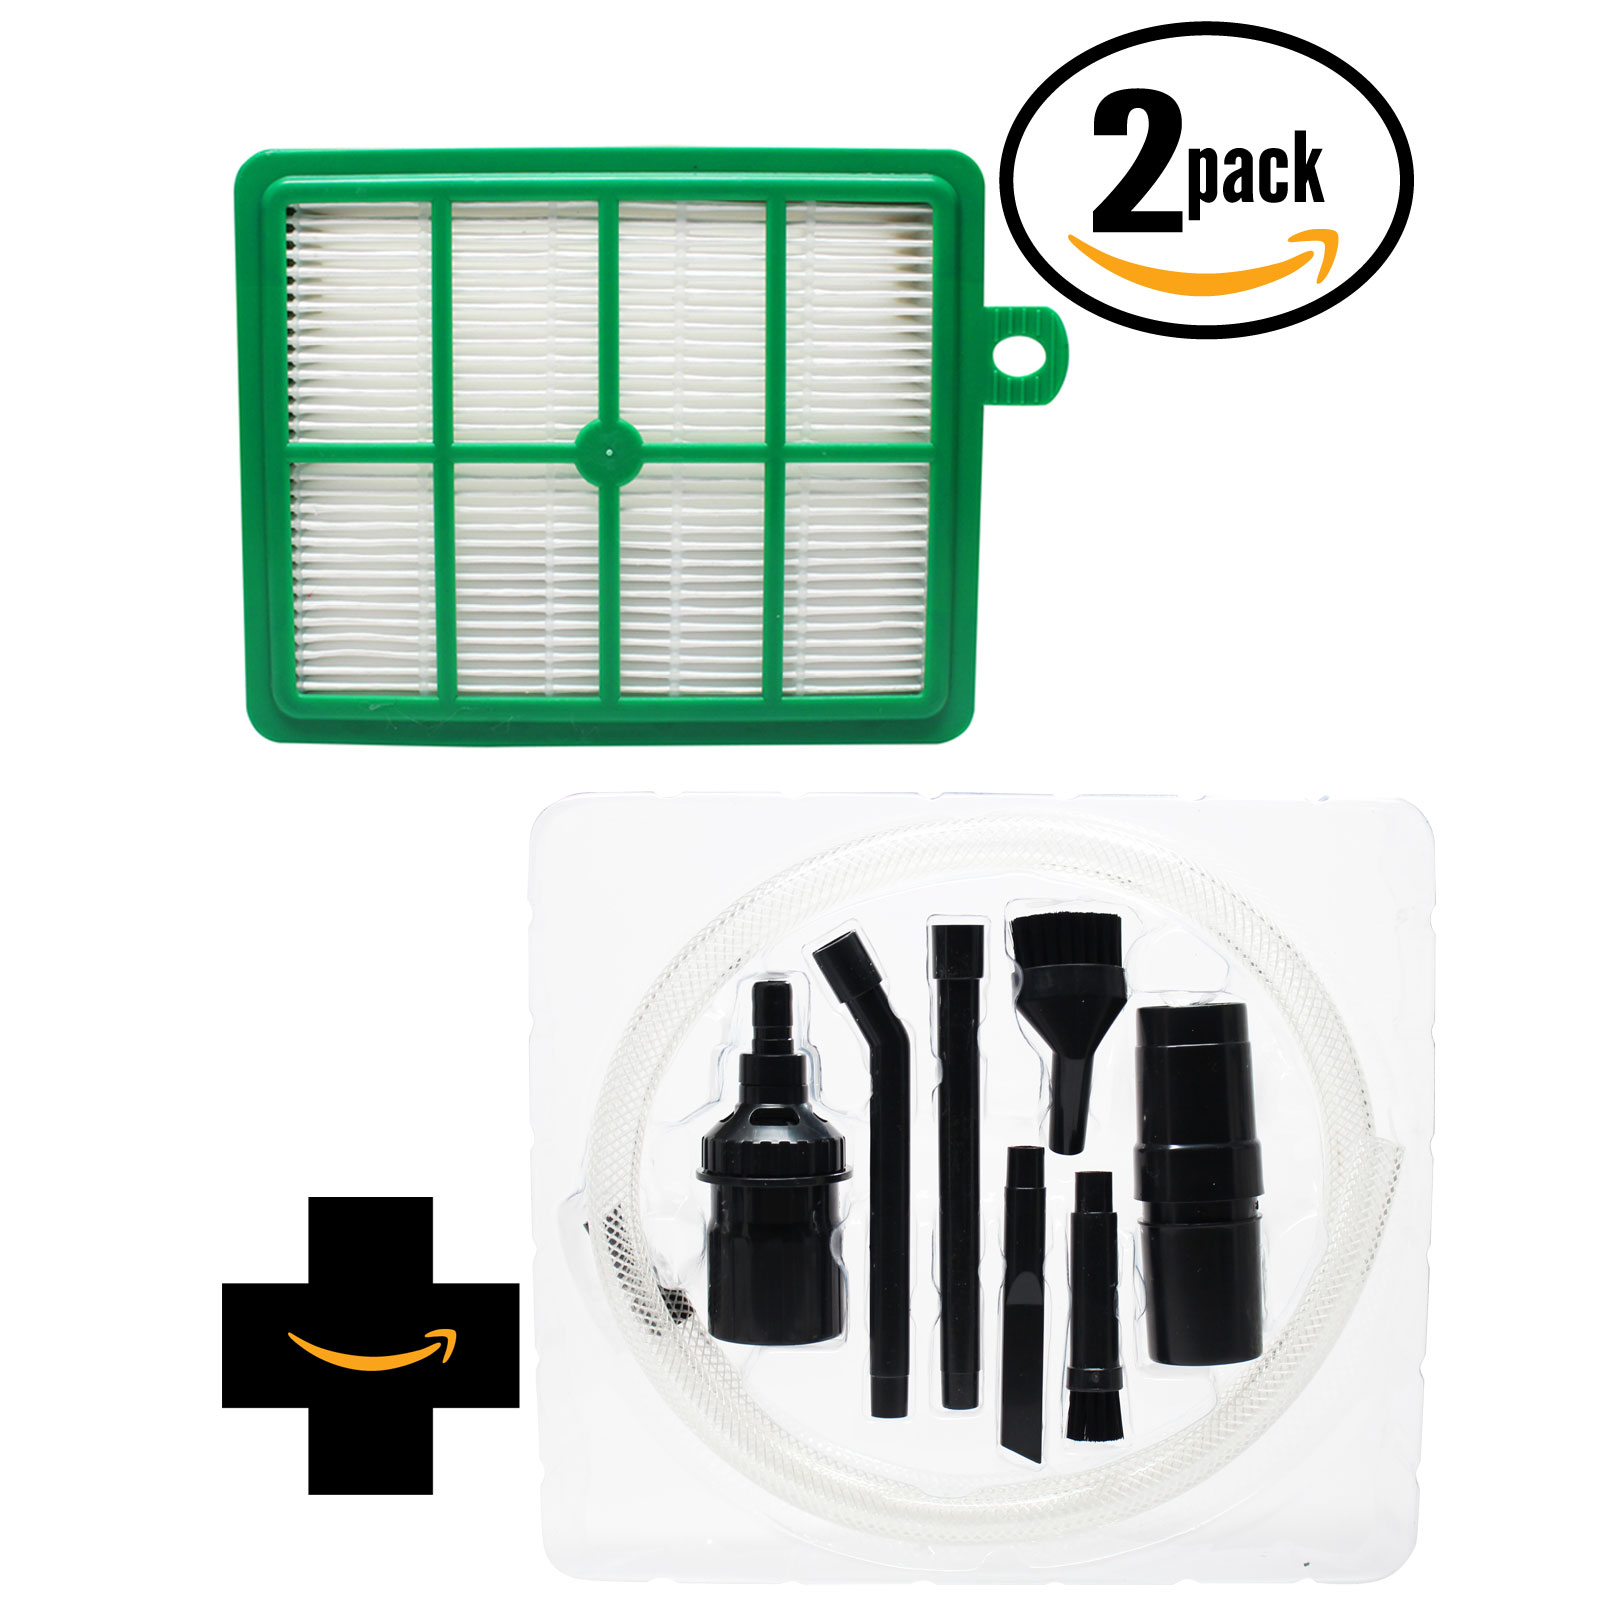 2-Pack Replacement Electrolux EL4300A Vacuum HEPA Filter with 7-Piece Micro Vacuum Attachment Kit - Compatible Electrolux EL012B HEPA Filter